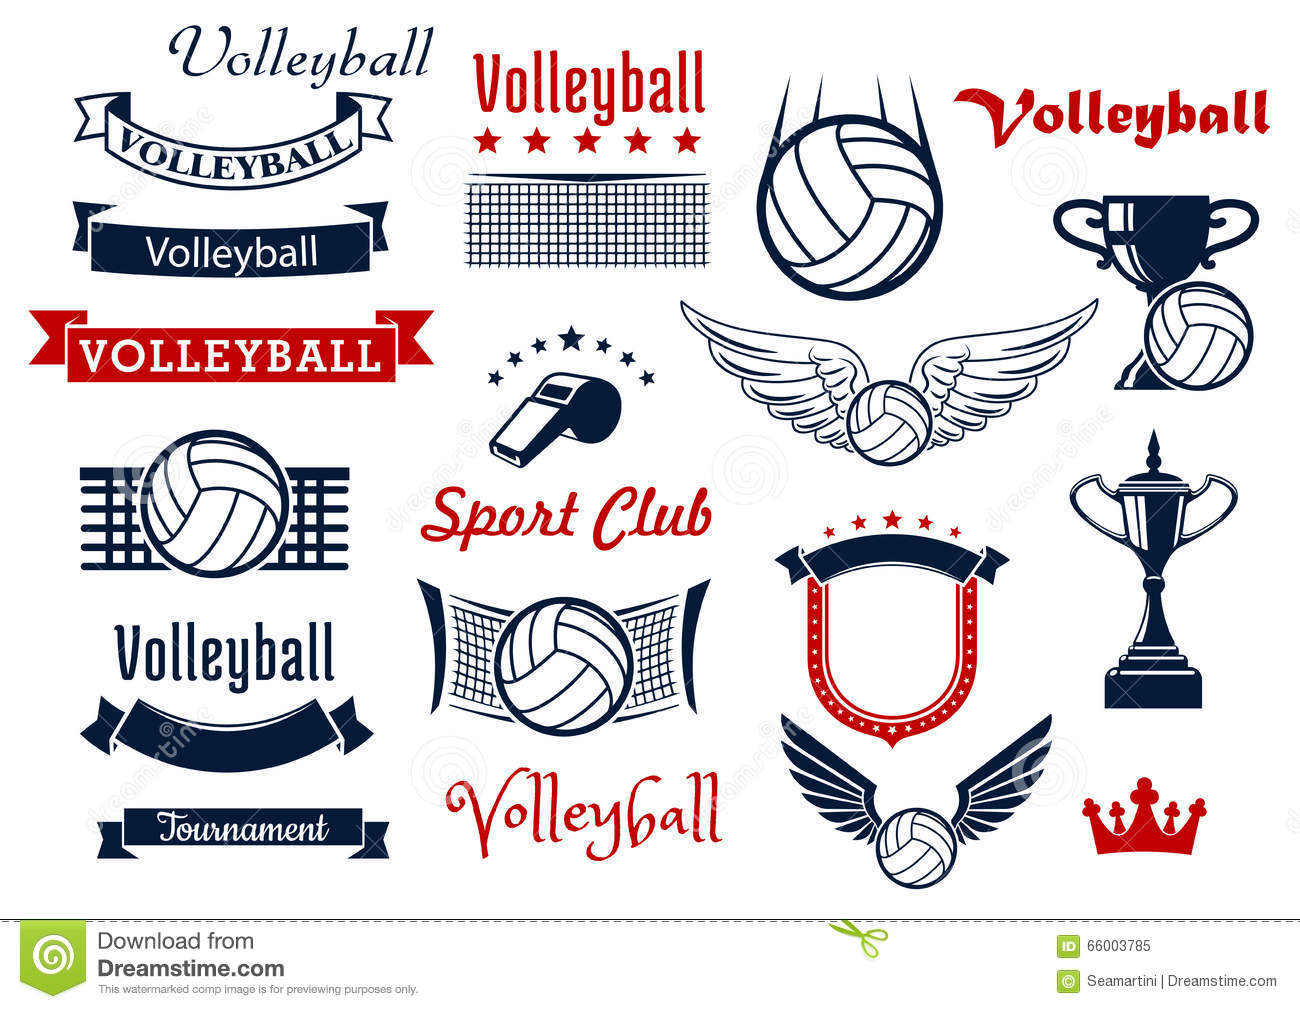 volleyball game and sport 3 welcome to the game of volleyball this guide is intended to help you attain a basic understanding of the game of volleyball you.